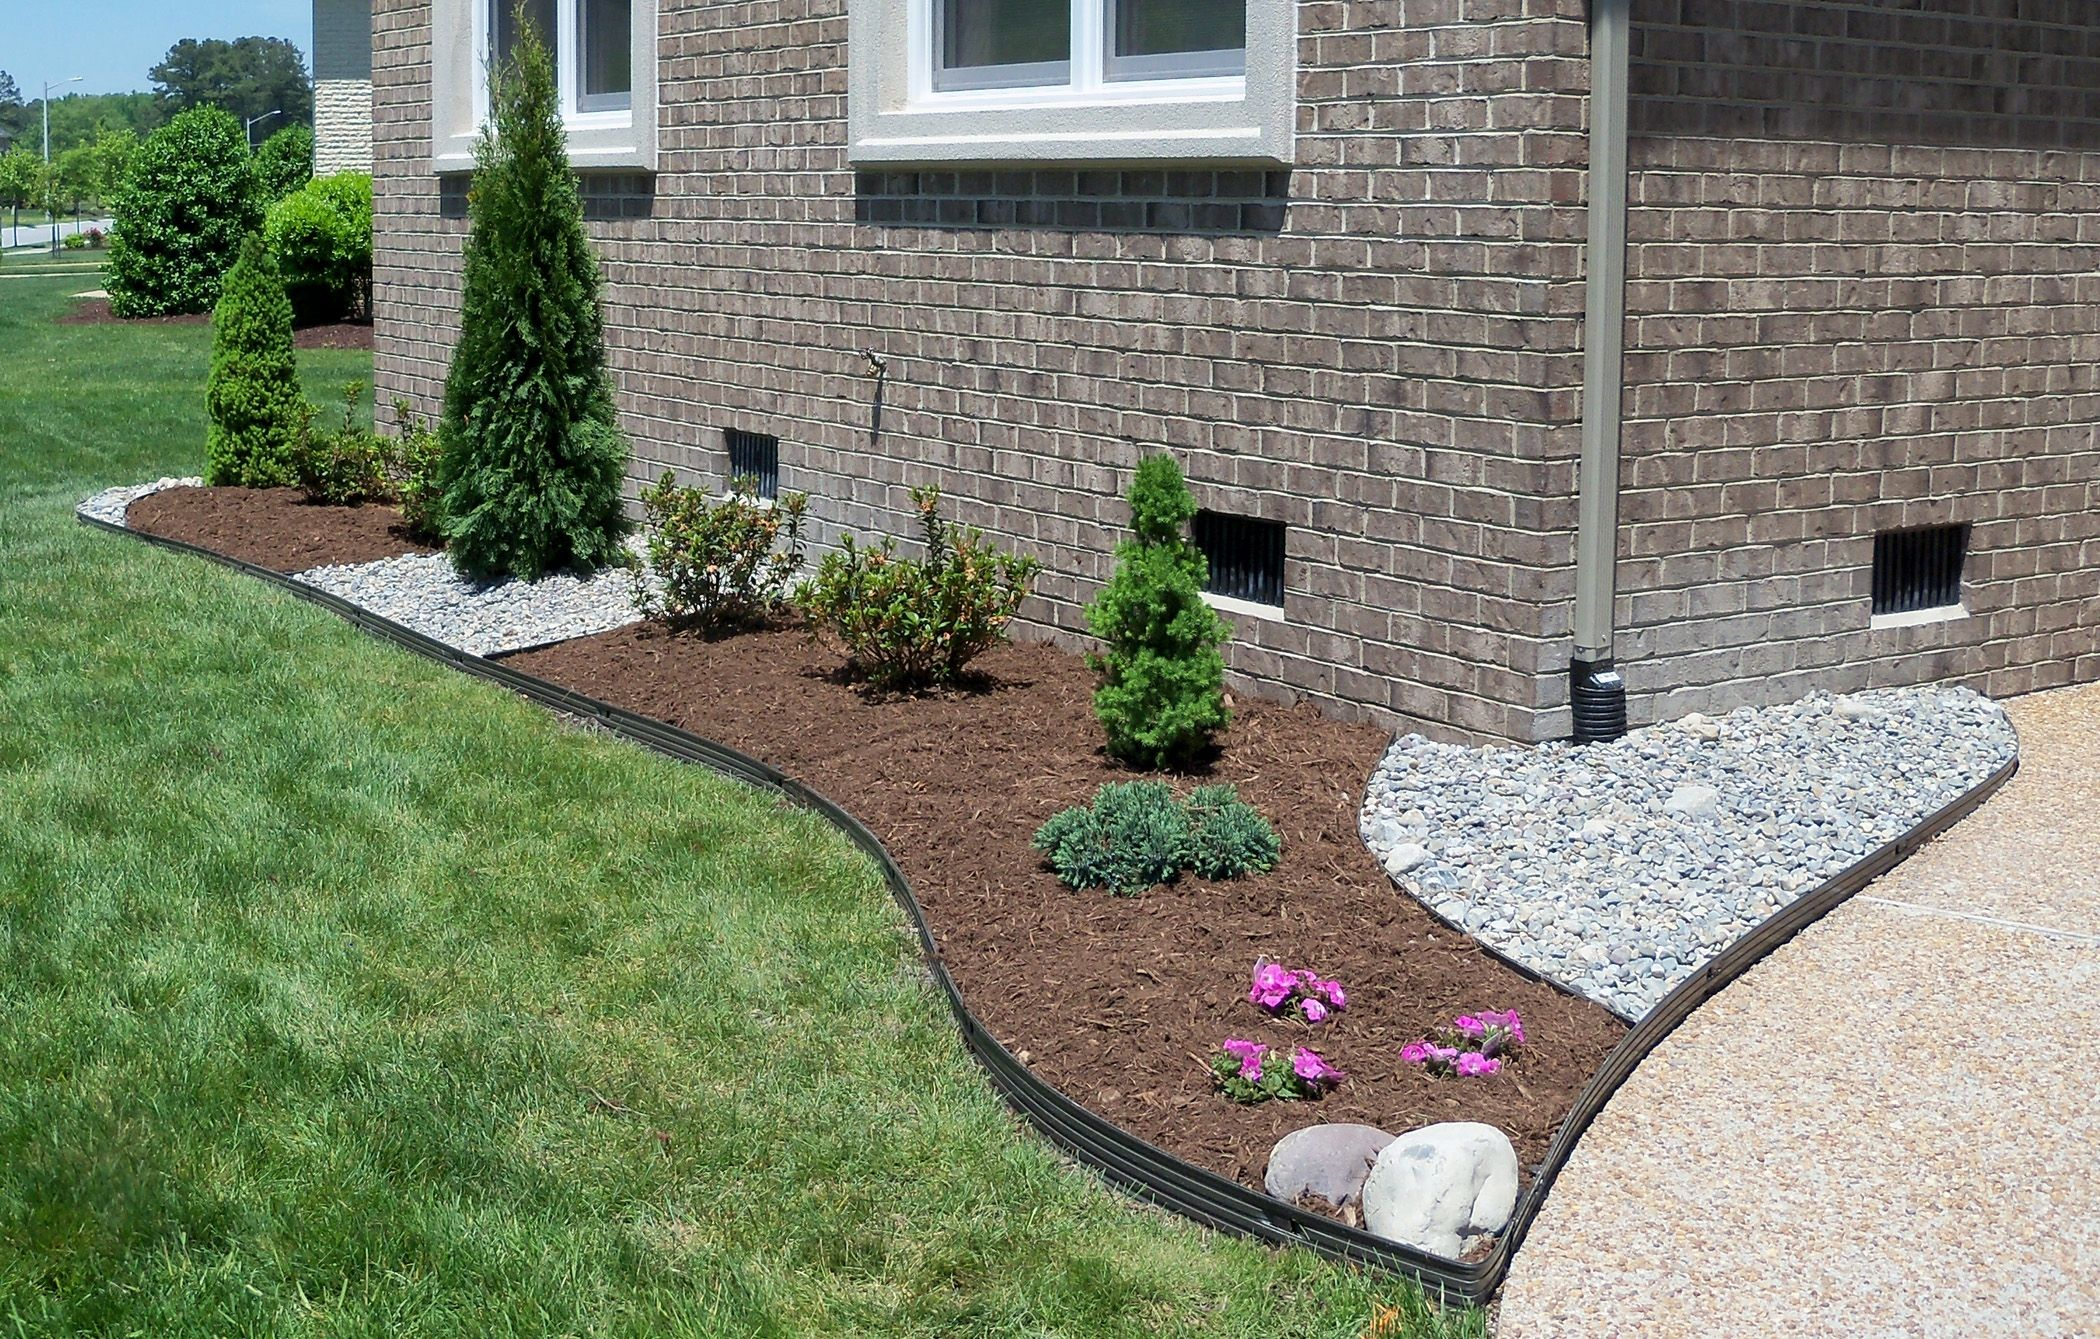 Gravel Landscaping Ideas Fresh Extravagant Porch And Landscape Ideas Gravel Landscaping Mulch Landscaping Cheap Landscaping Ideas